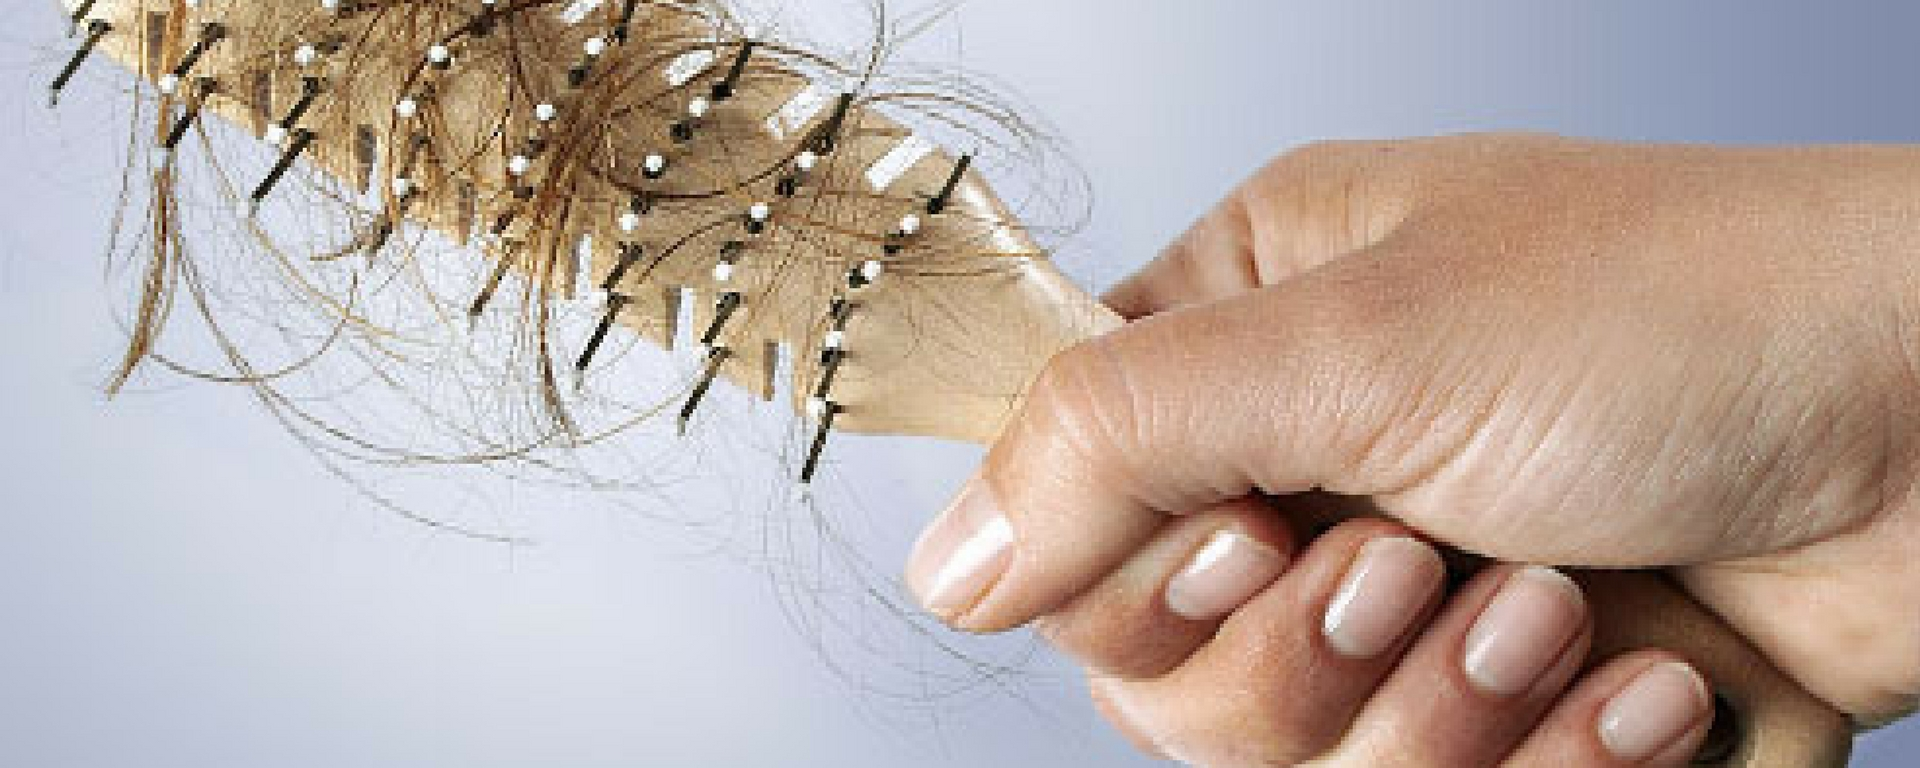 Diabetes Hair Loss: Why It Happens and What You Can Do